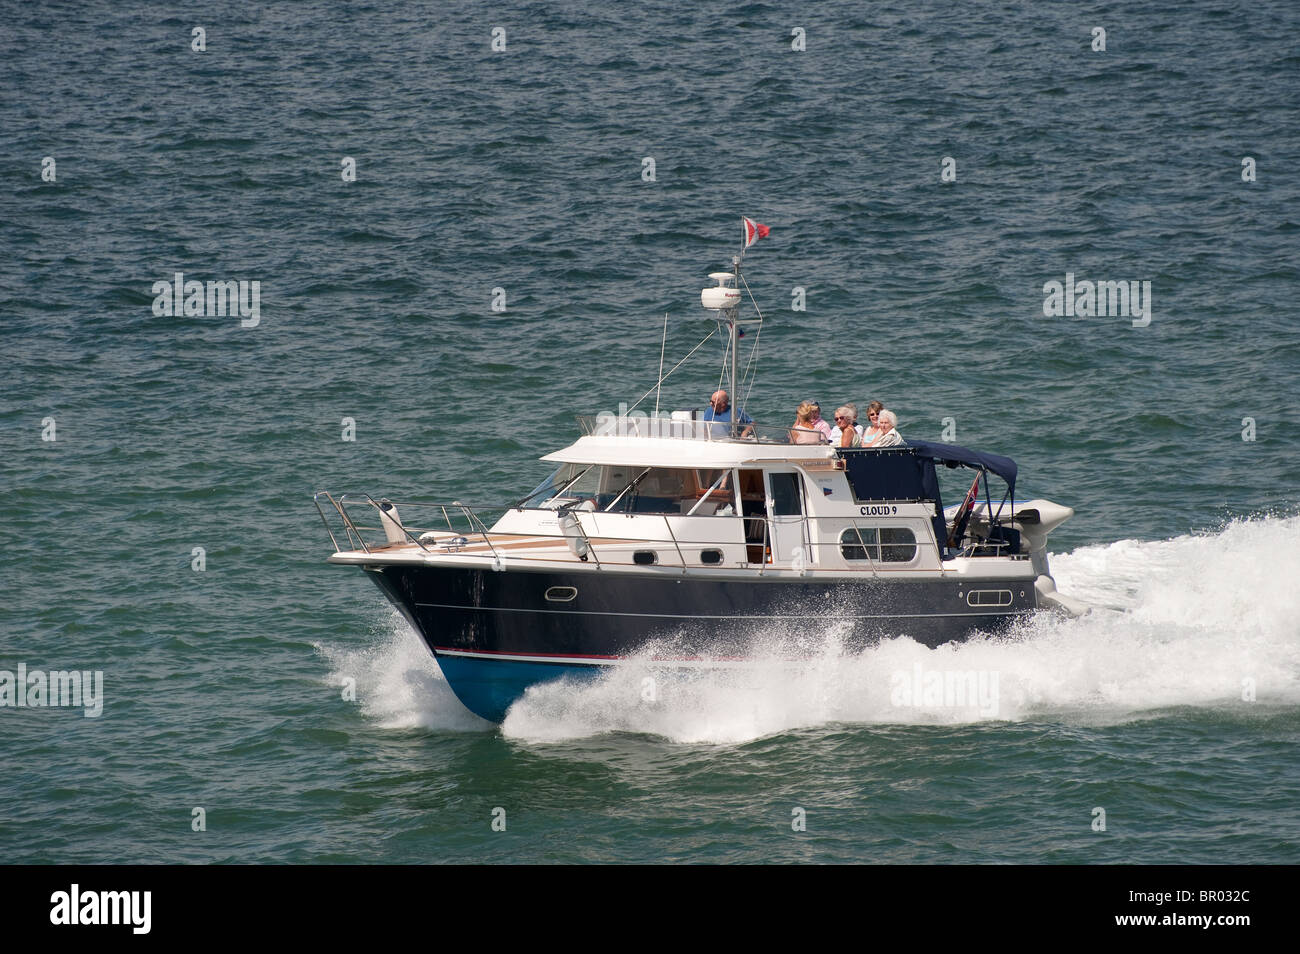 Nimbus Commander offshore powerboat speeding through the water. - Stock Image